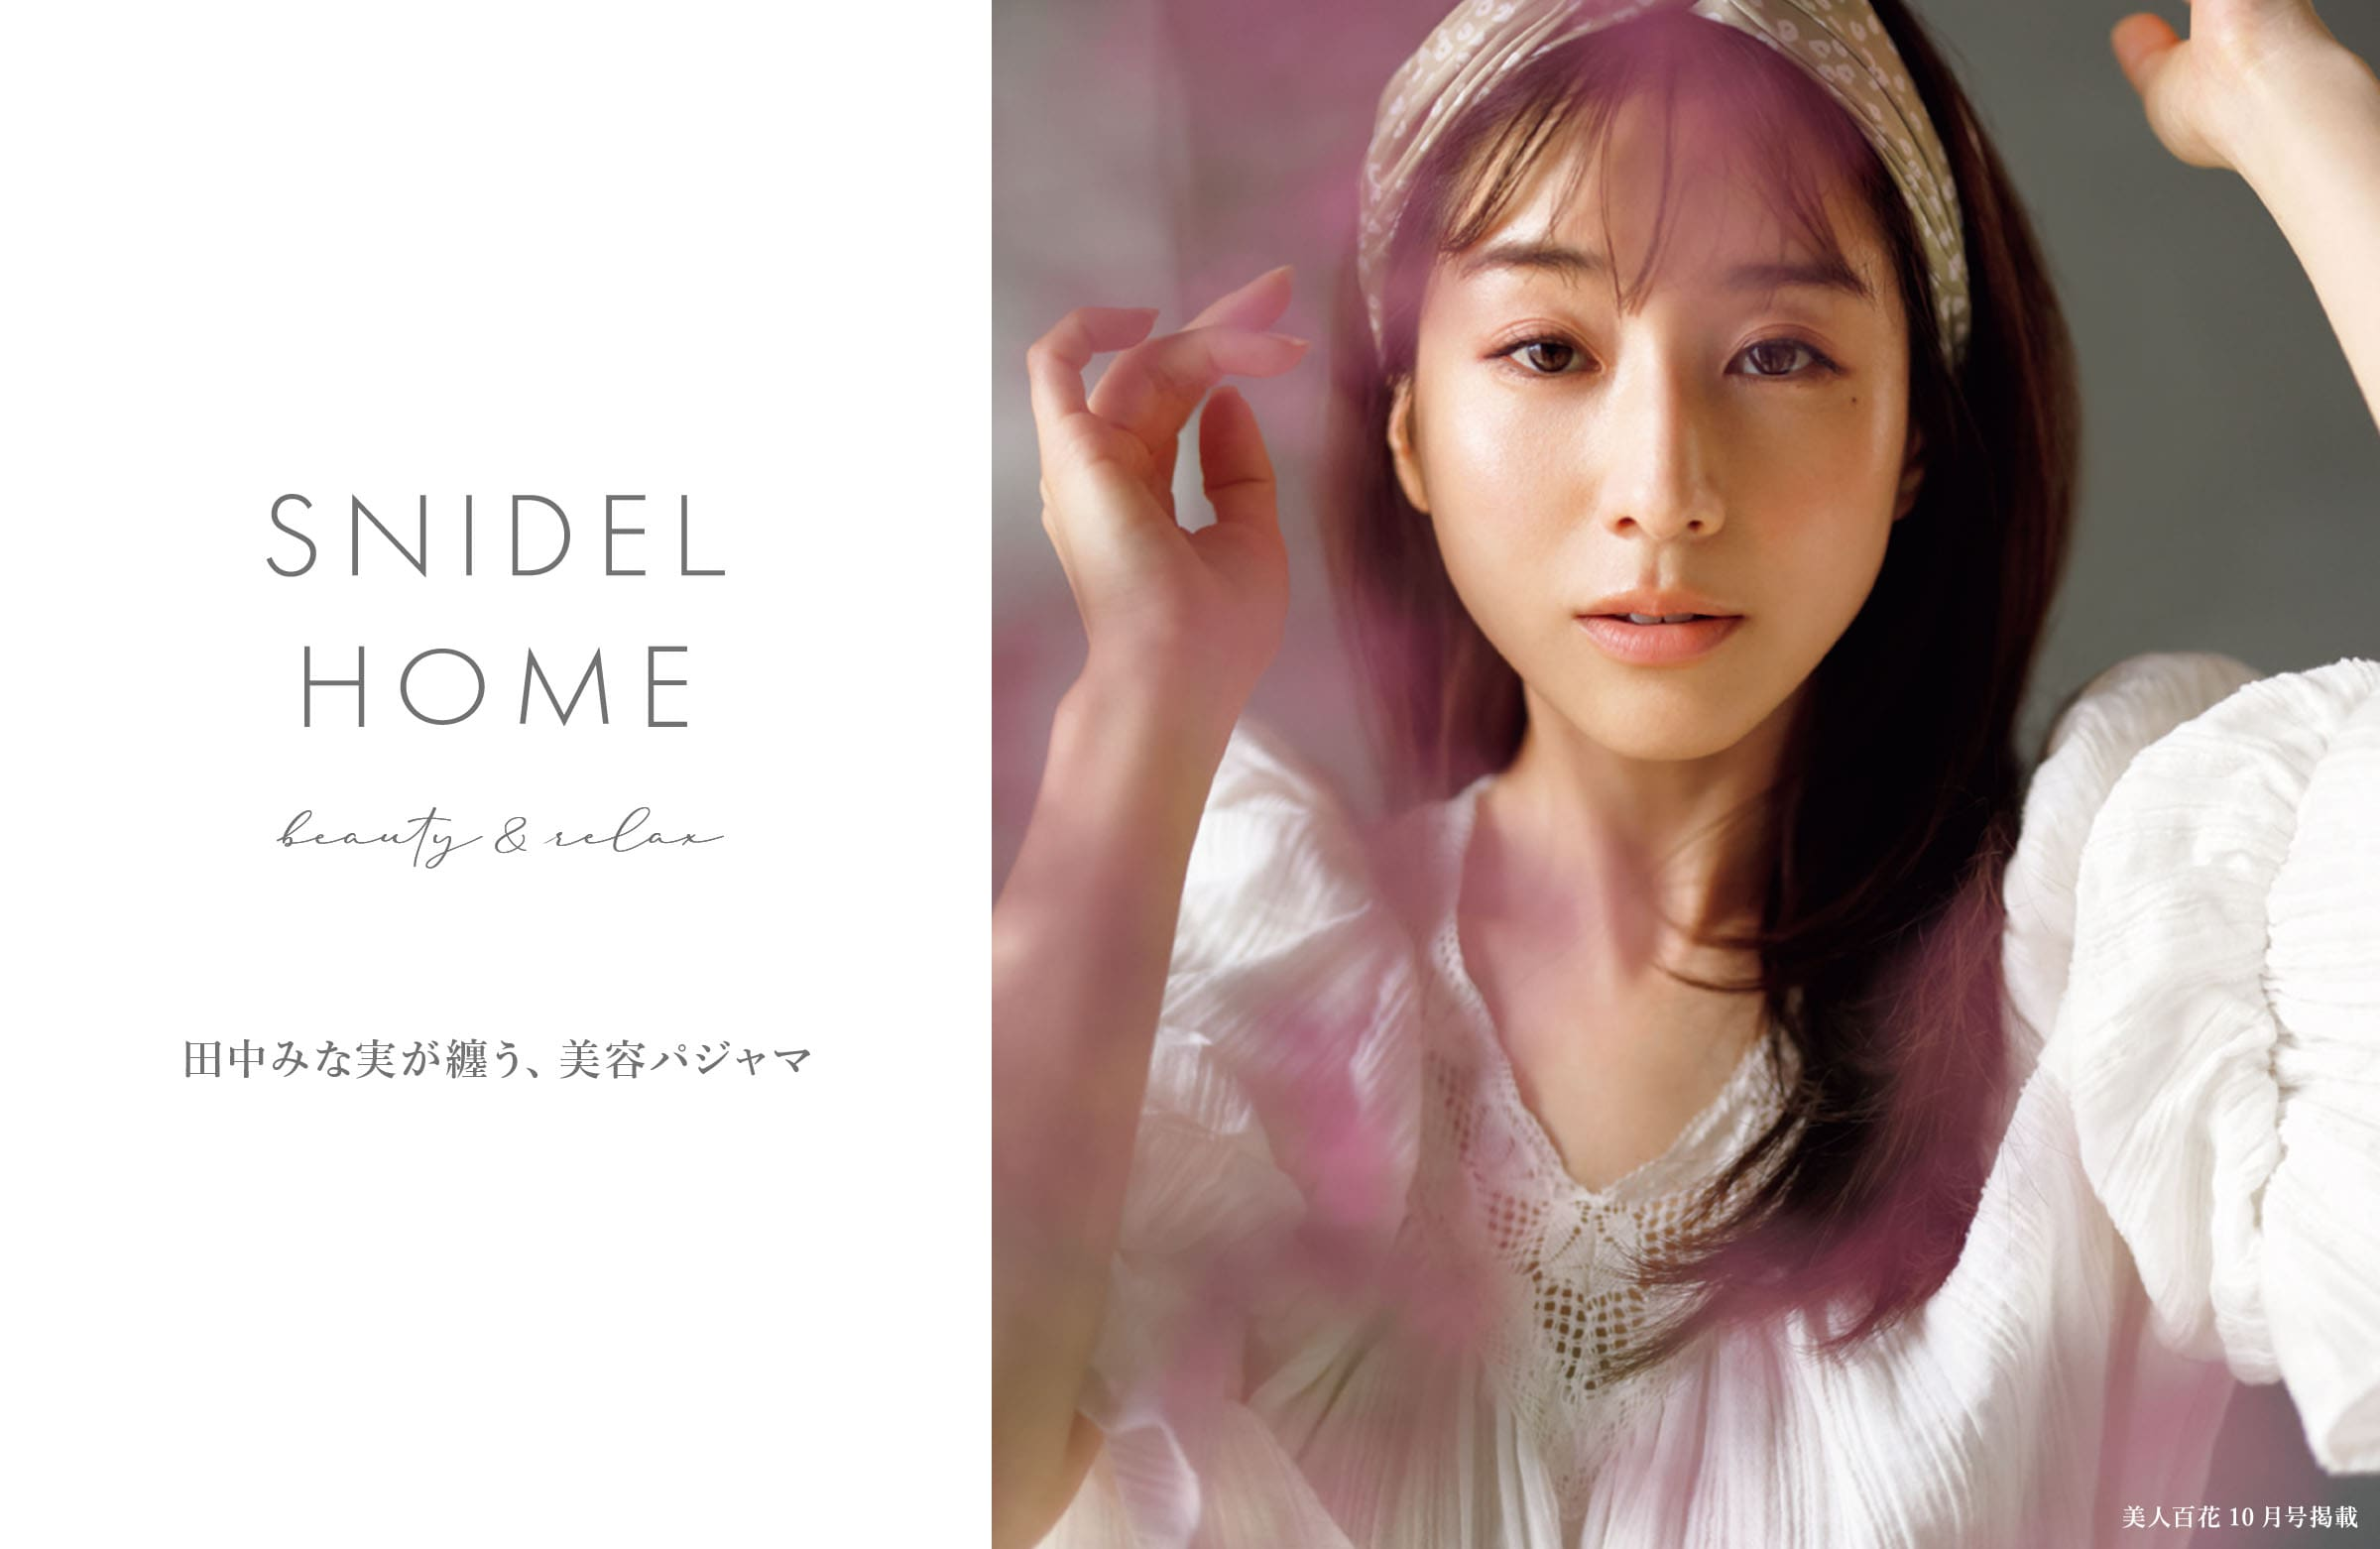 SNIDEL HOME Beauty & Relax 田中みな実が纏う、美容パジャマ